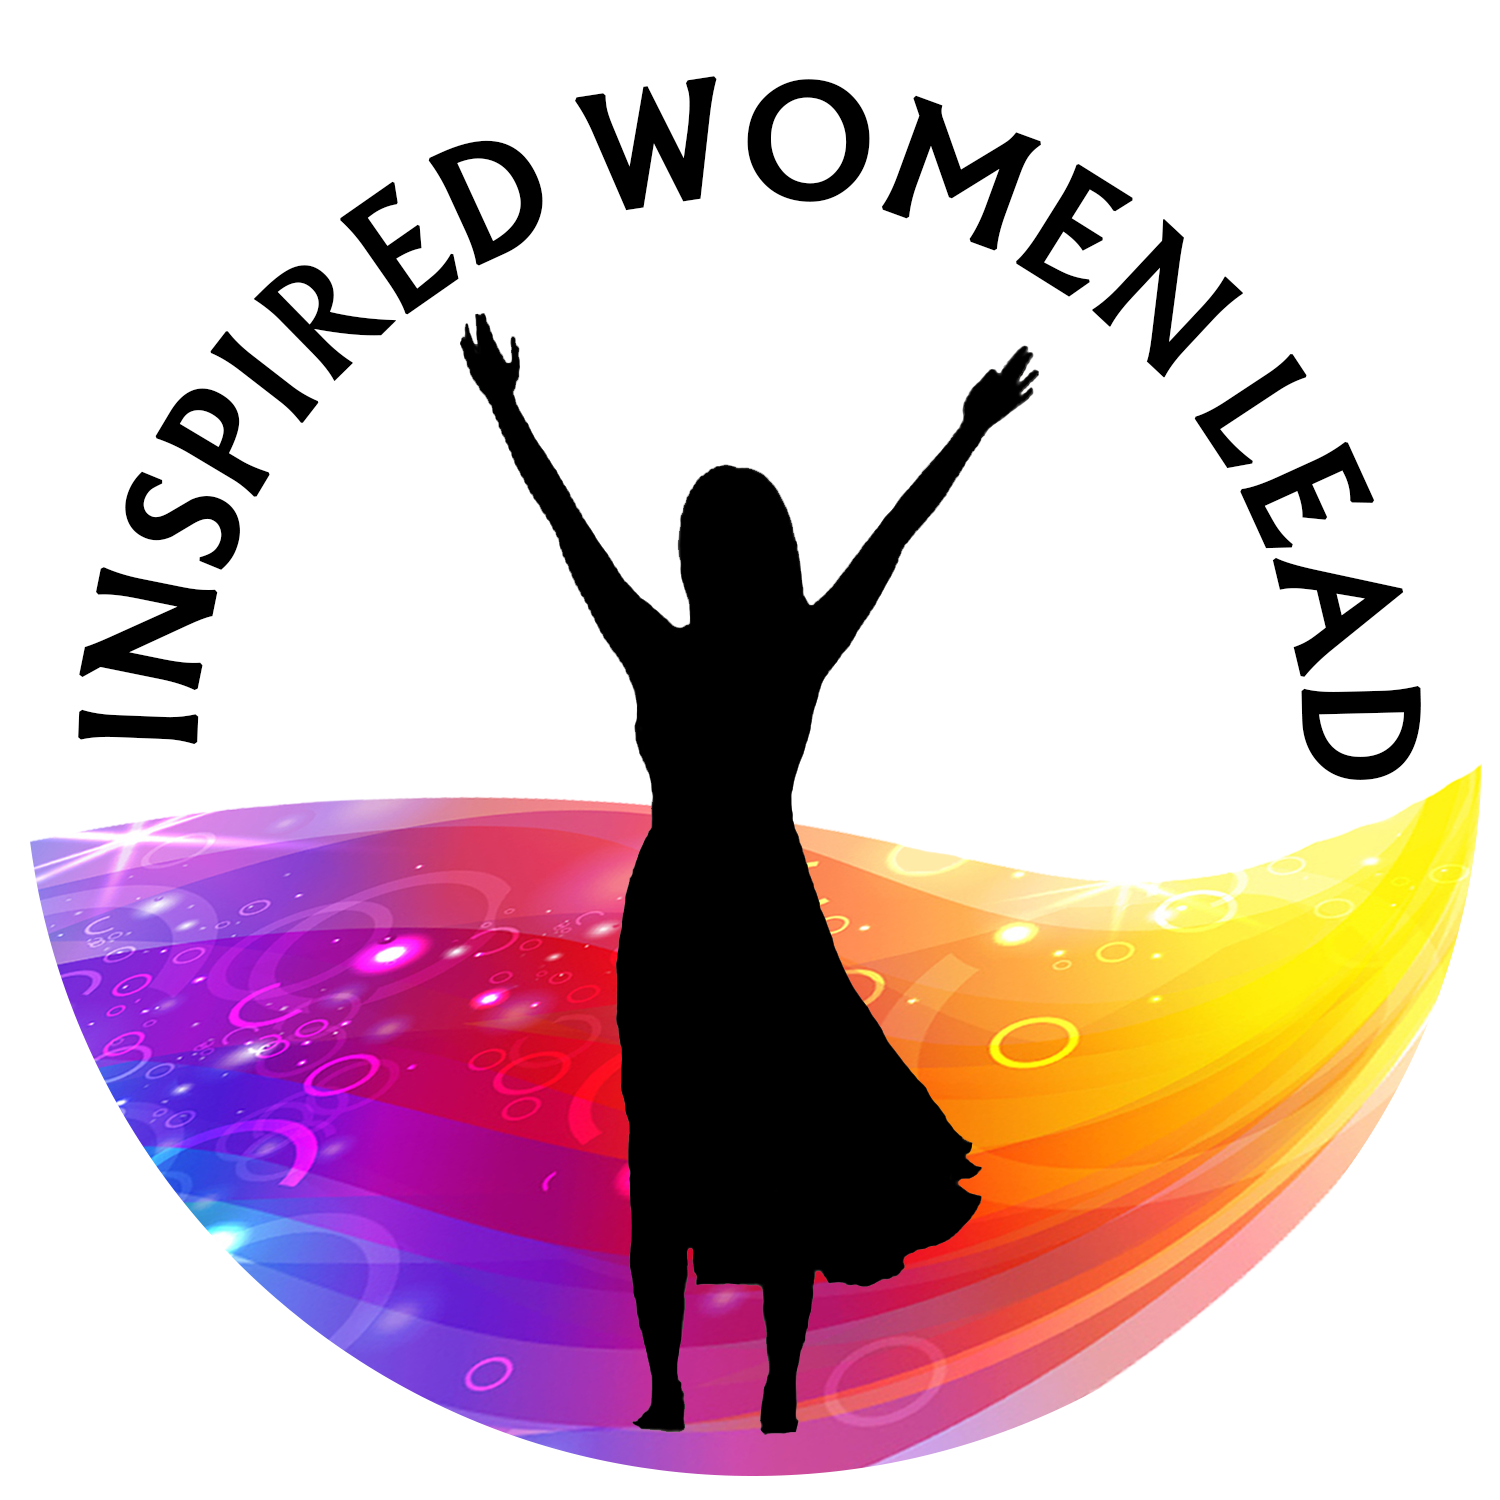 Strong clipart inspiring person. About inspired women lead